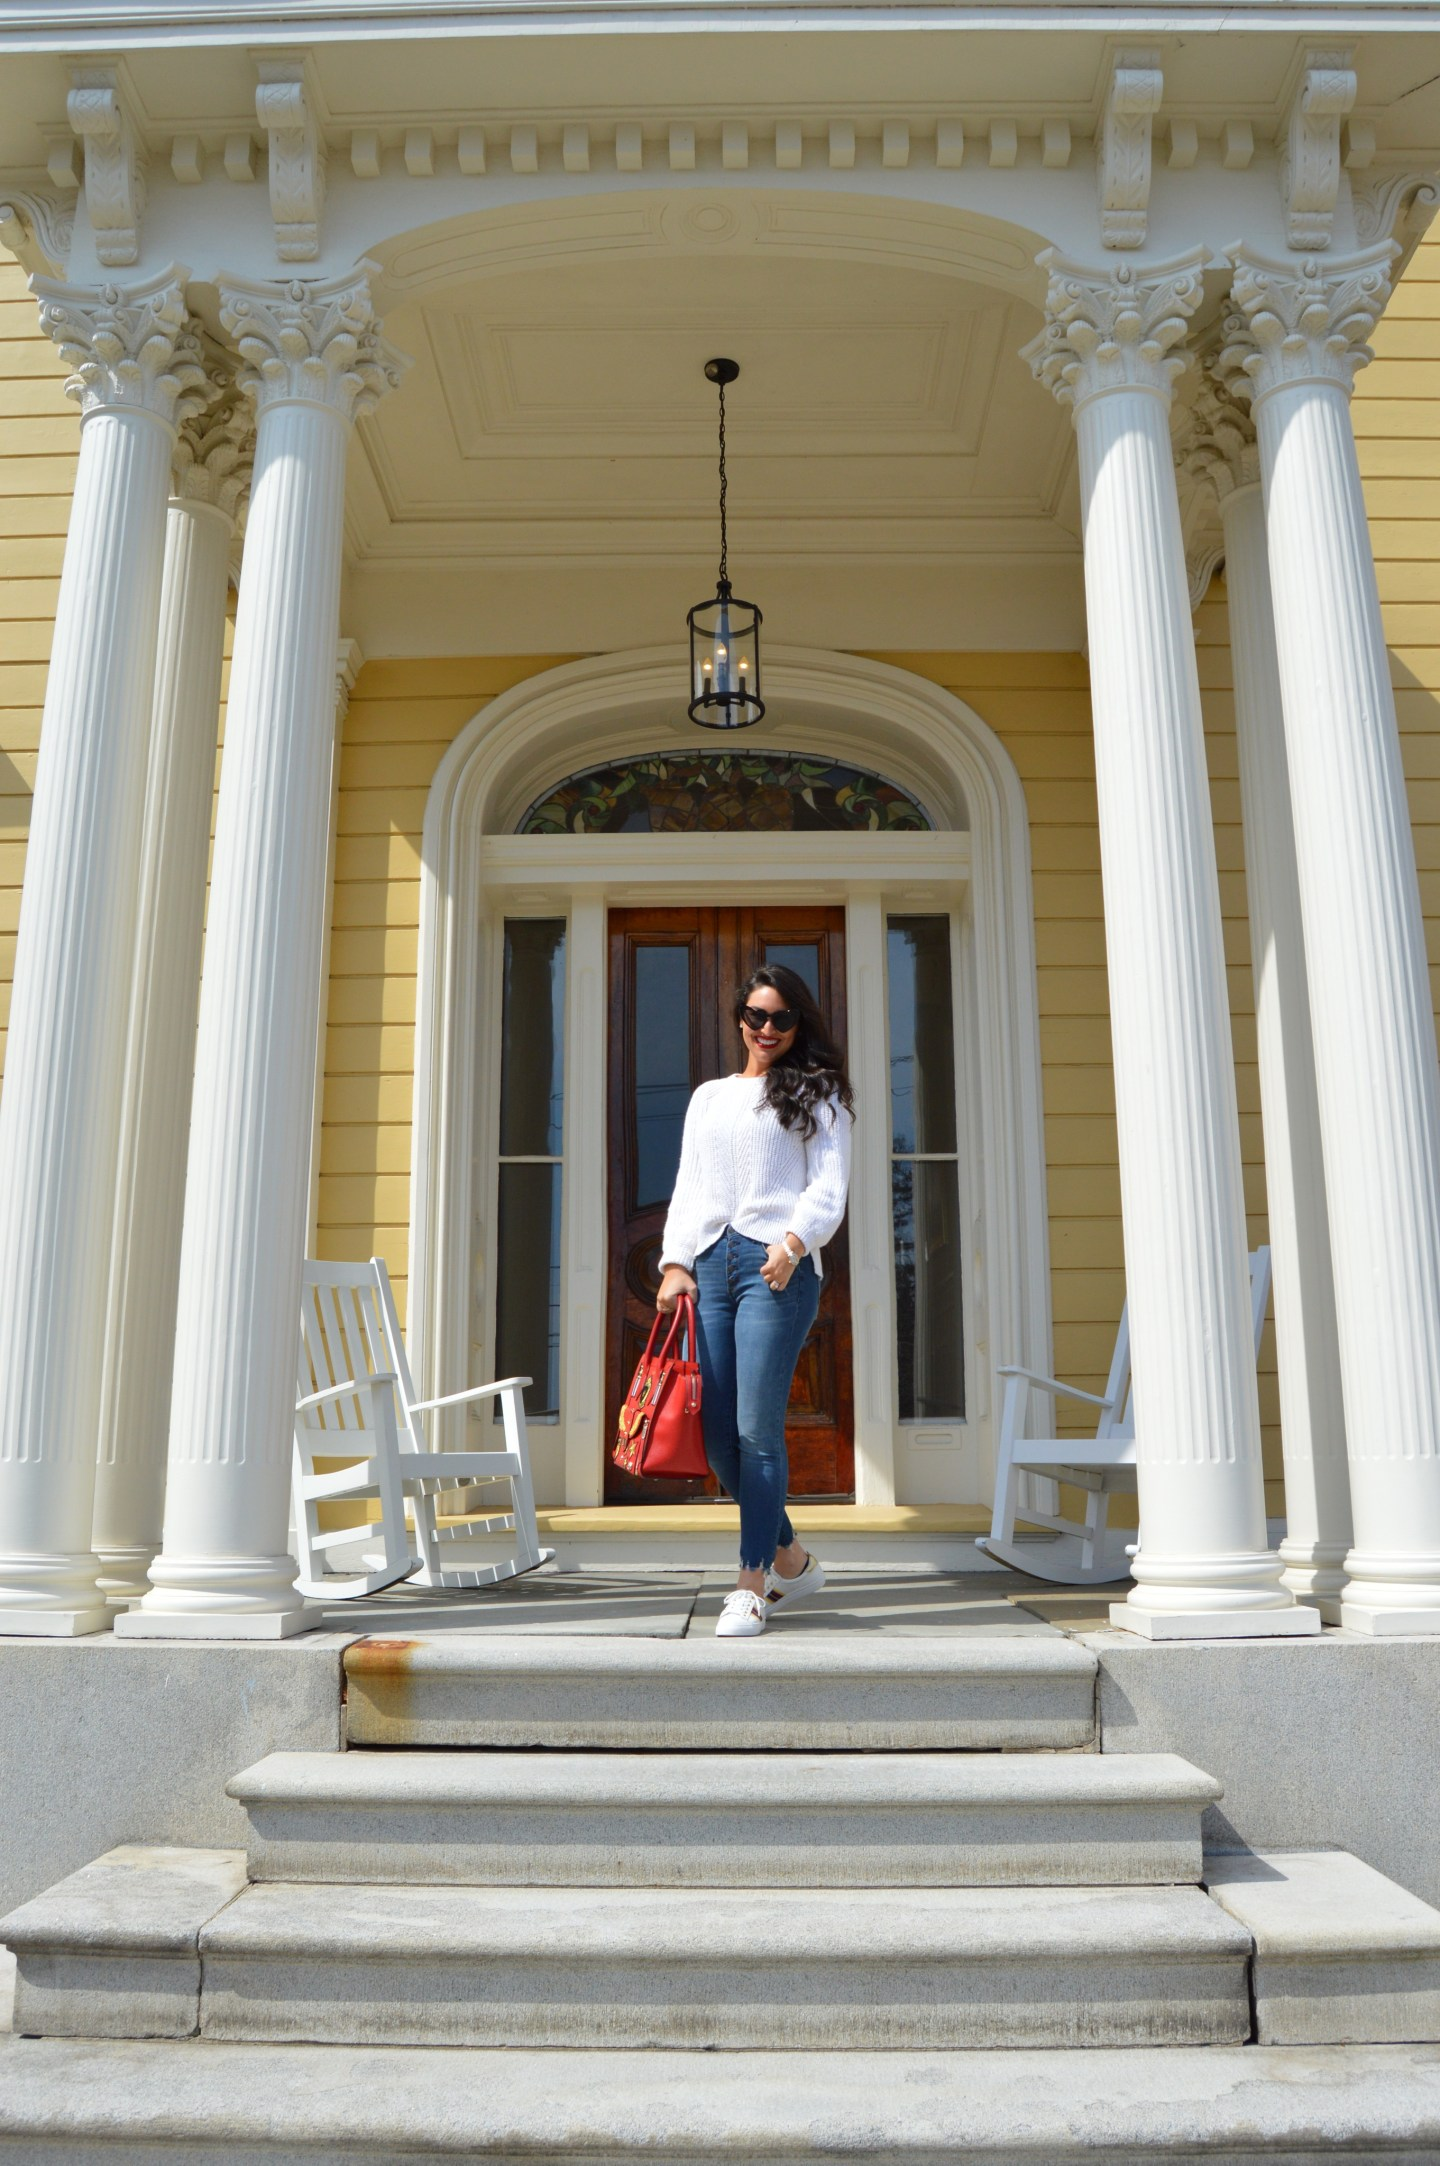 36 Hours in Mystic, CT + The Spicer Mansion